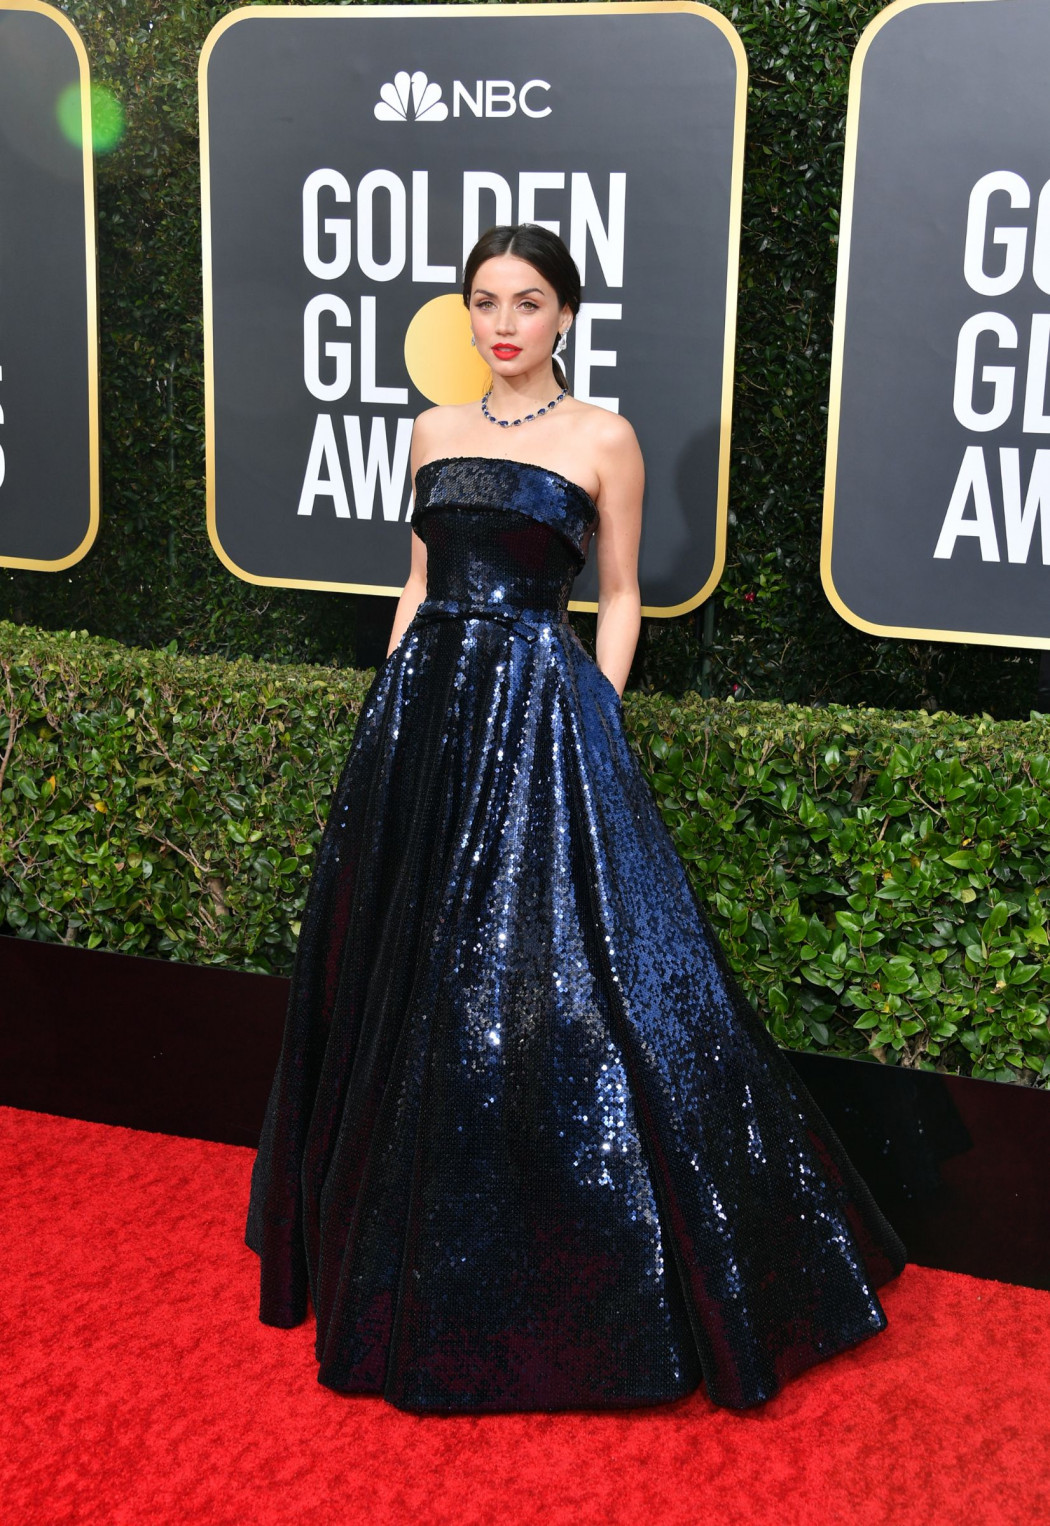 Golden Globes 2020 : les plus beaux looks du tapis rouge - 25